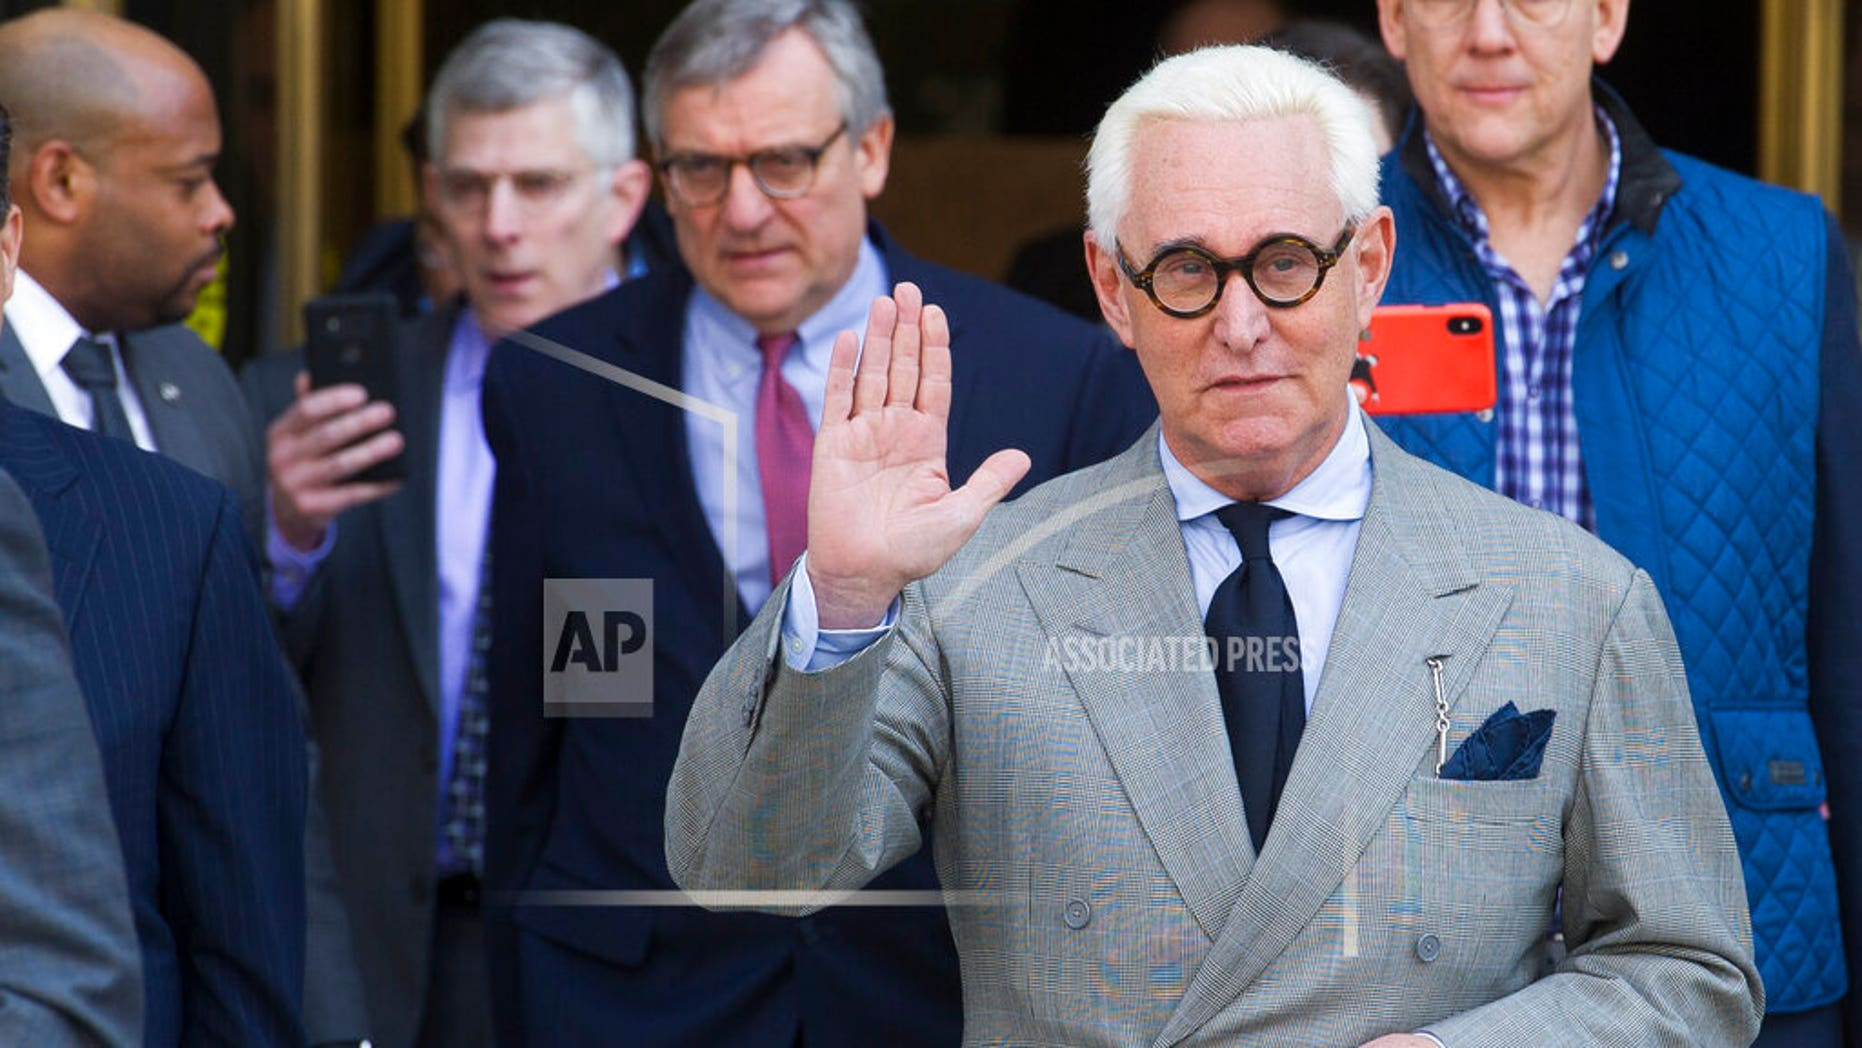 In this Thursday, March 14 photo, Roger Stone, an associate of President Trump, leaves U.S. District Court after a court status conference. On Friday, Stone asked a federal judge to compel the Justice Department to turn over a full copy of Special Counsel Robert Mueller's report on the Russia investigation as part of discovery in his criminal case. (AP Photo/Cliff Owen, File)